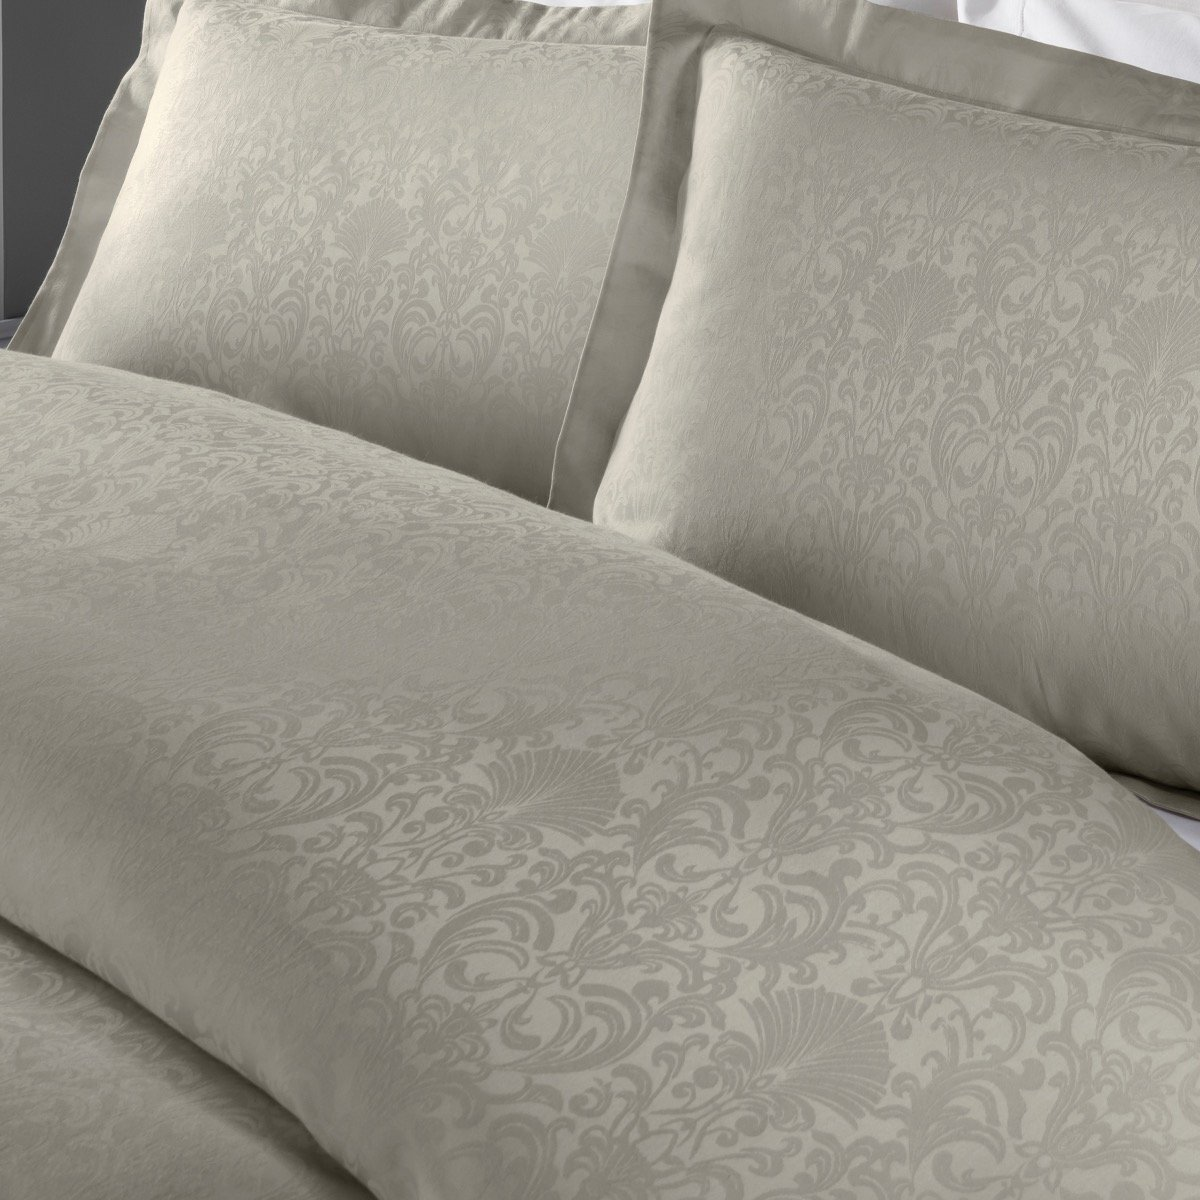 Damask Jacquard Taupe Bedding - Reversible Duvet Cover and Pillowcase Set